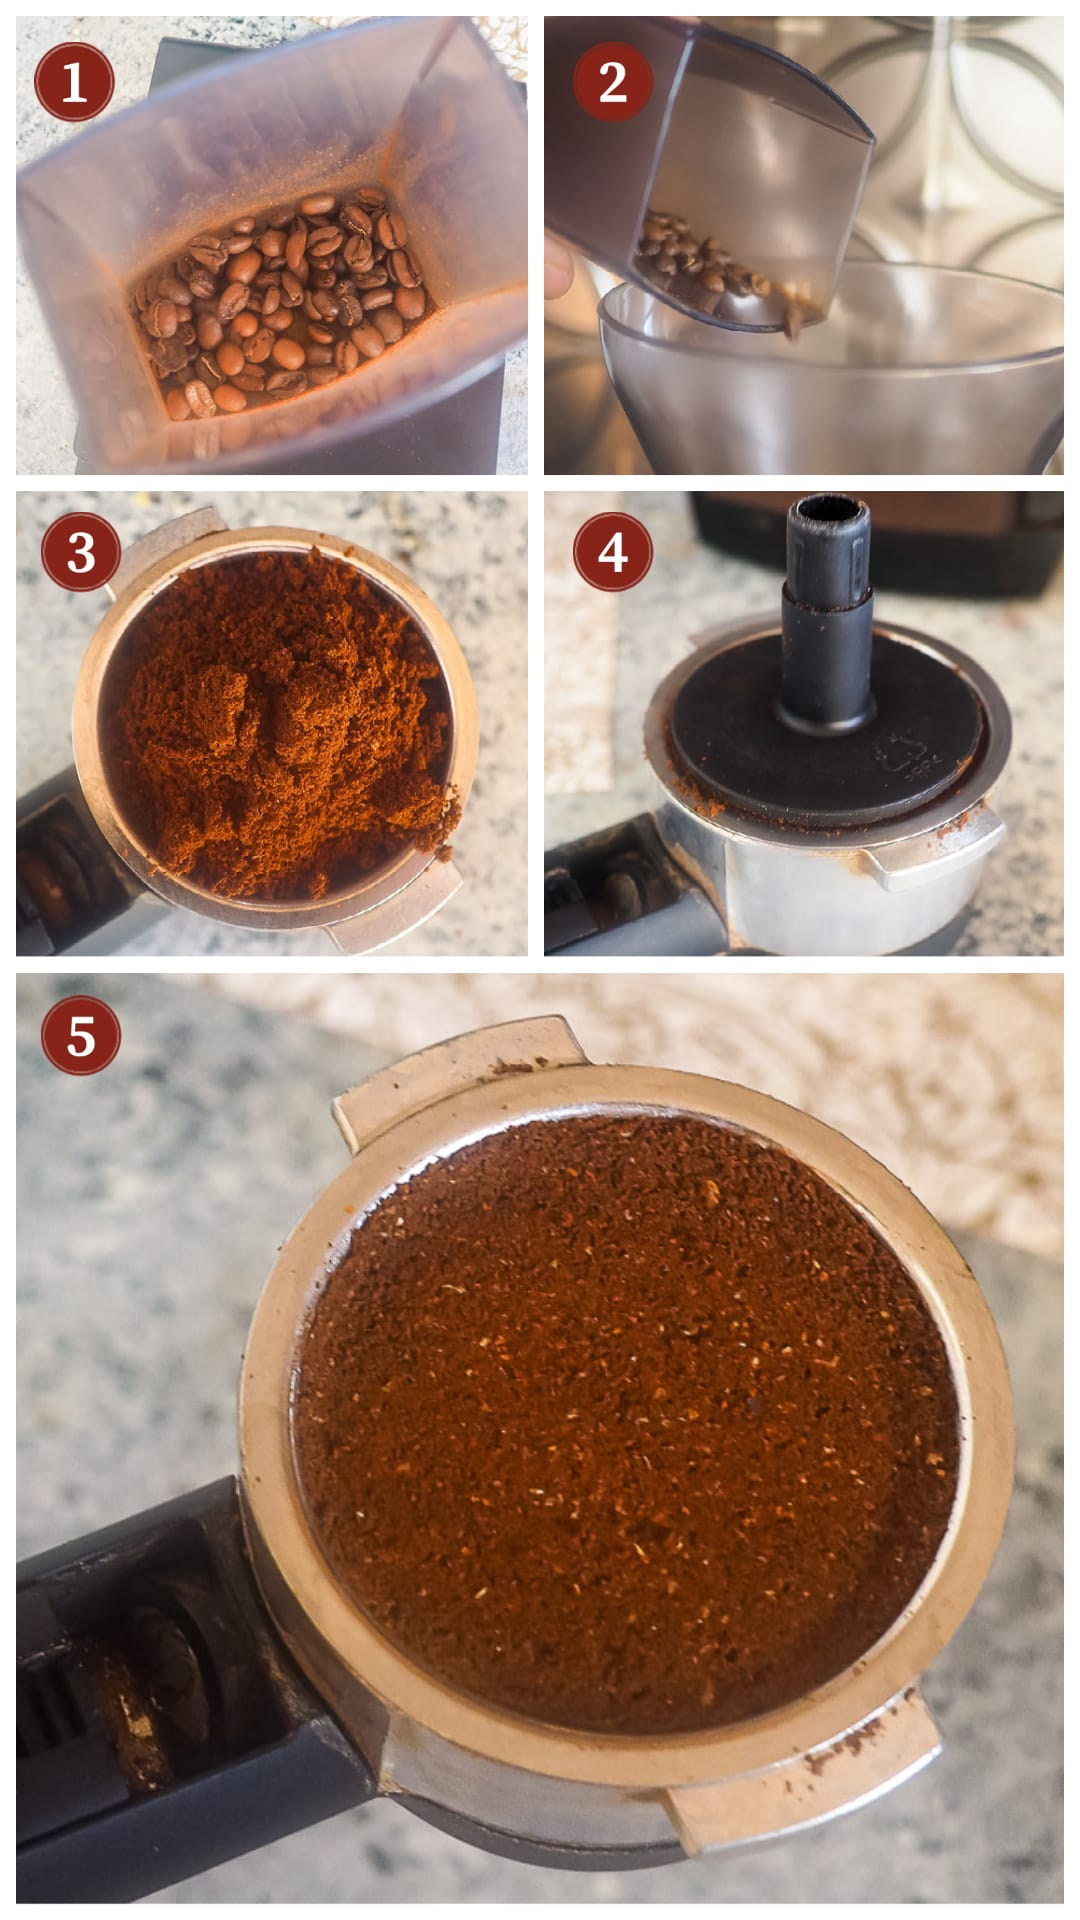 A collage of images showing how to make espresso, steps 1 - 5.